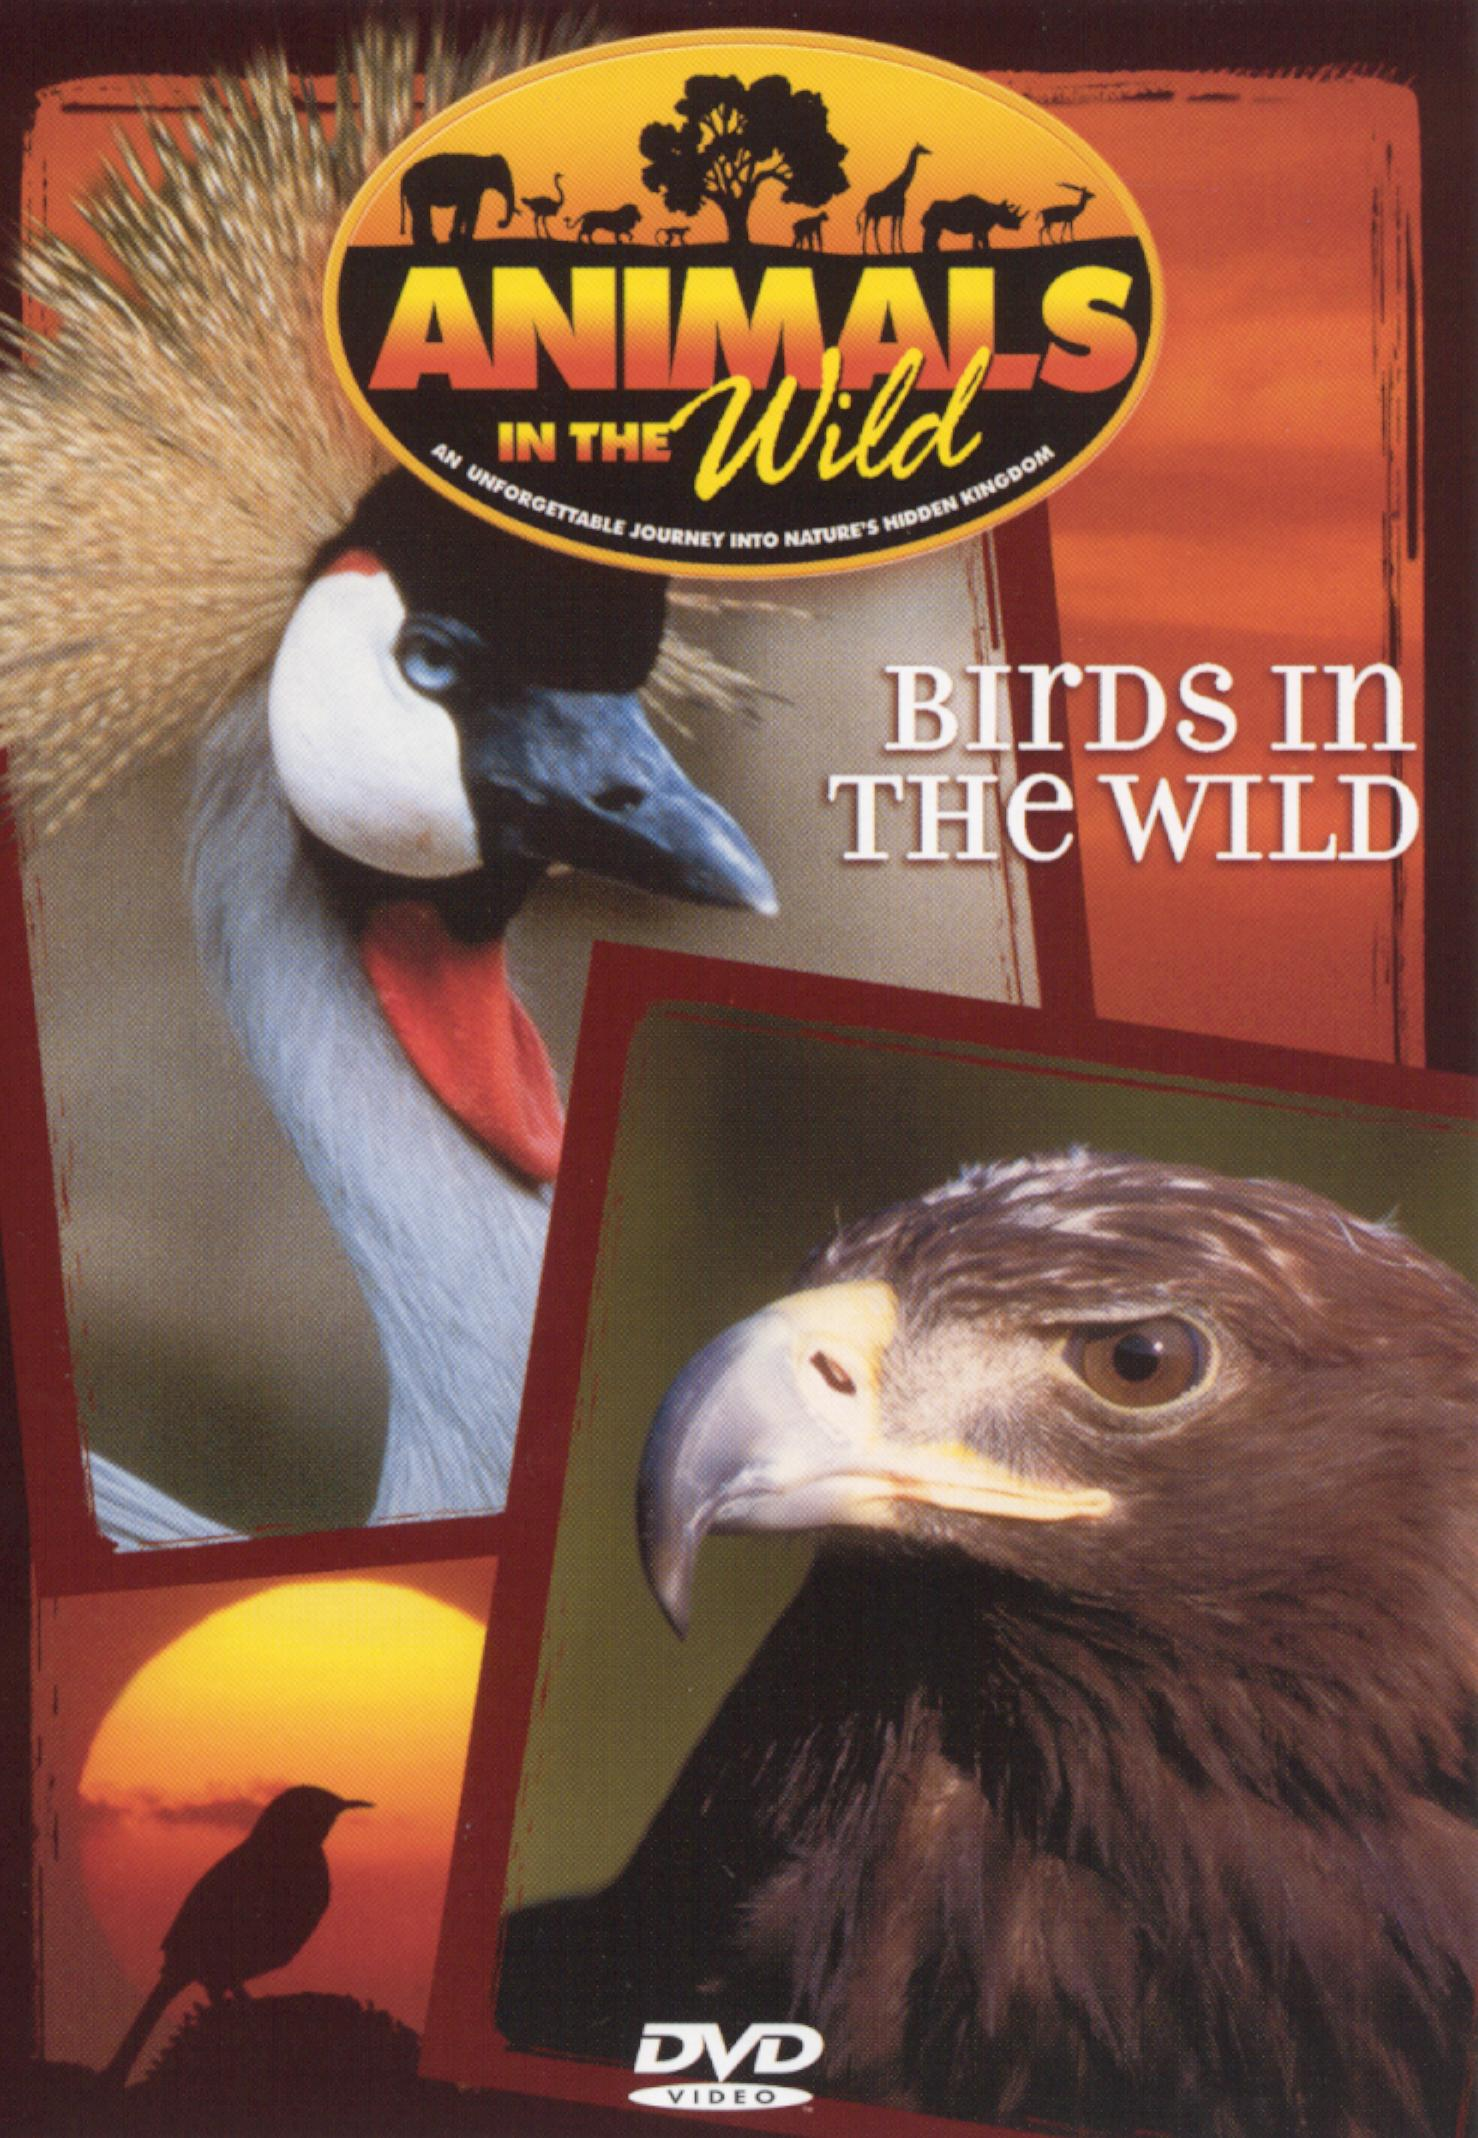 Animals in the Wild: Birds in the Wild